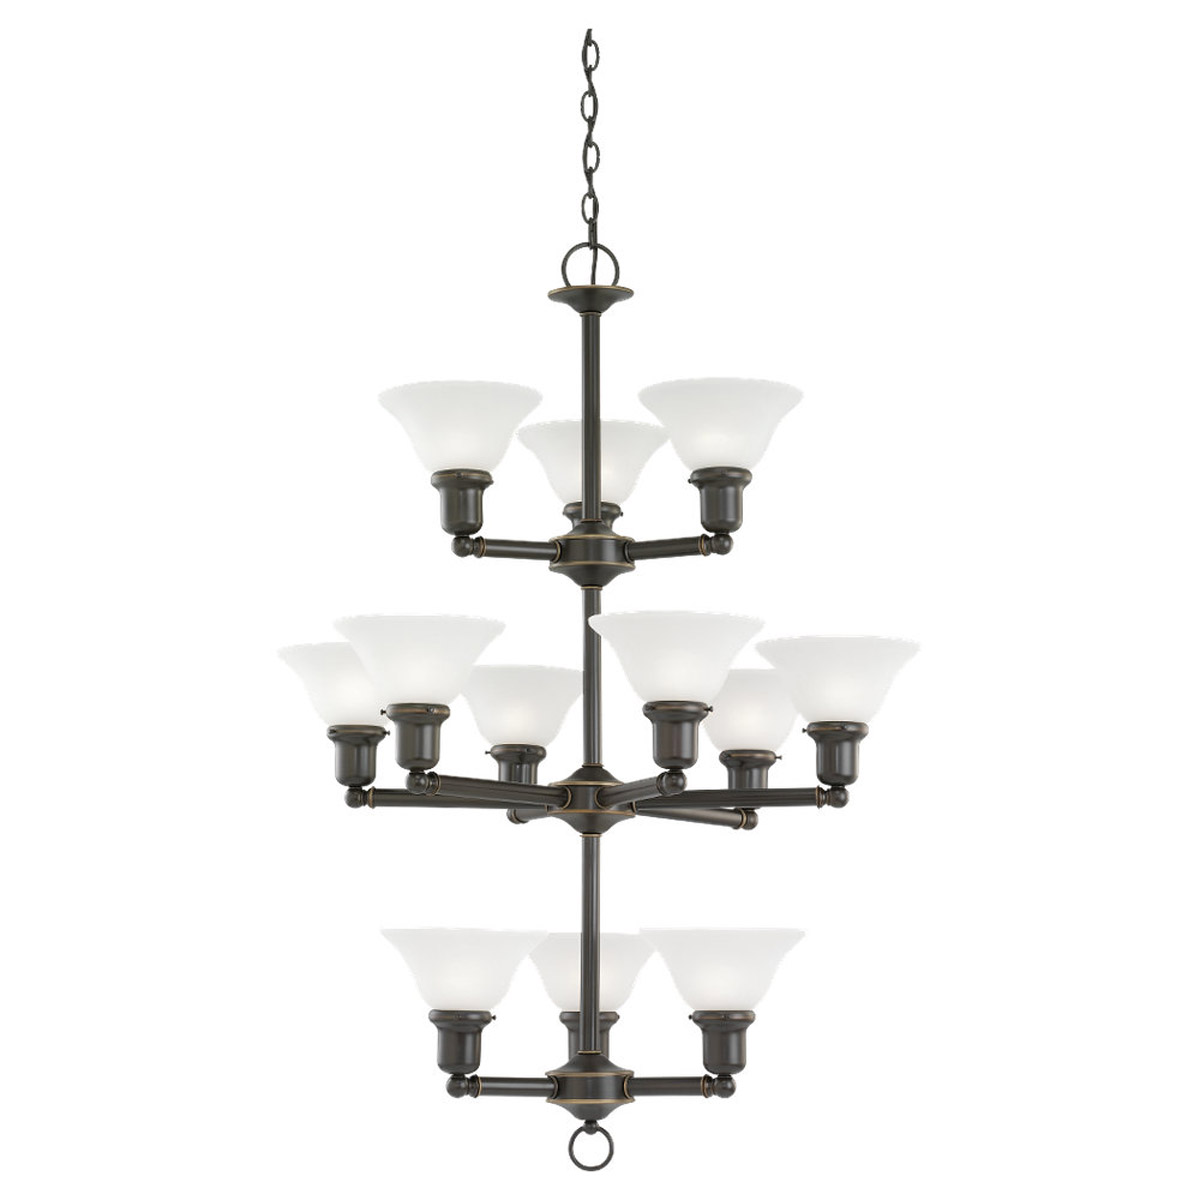 Sea Gull Lighting Sussex 12 Light Chandelier in Heirloom Bronze 39064BLE-782